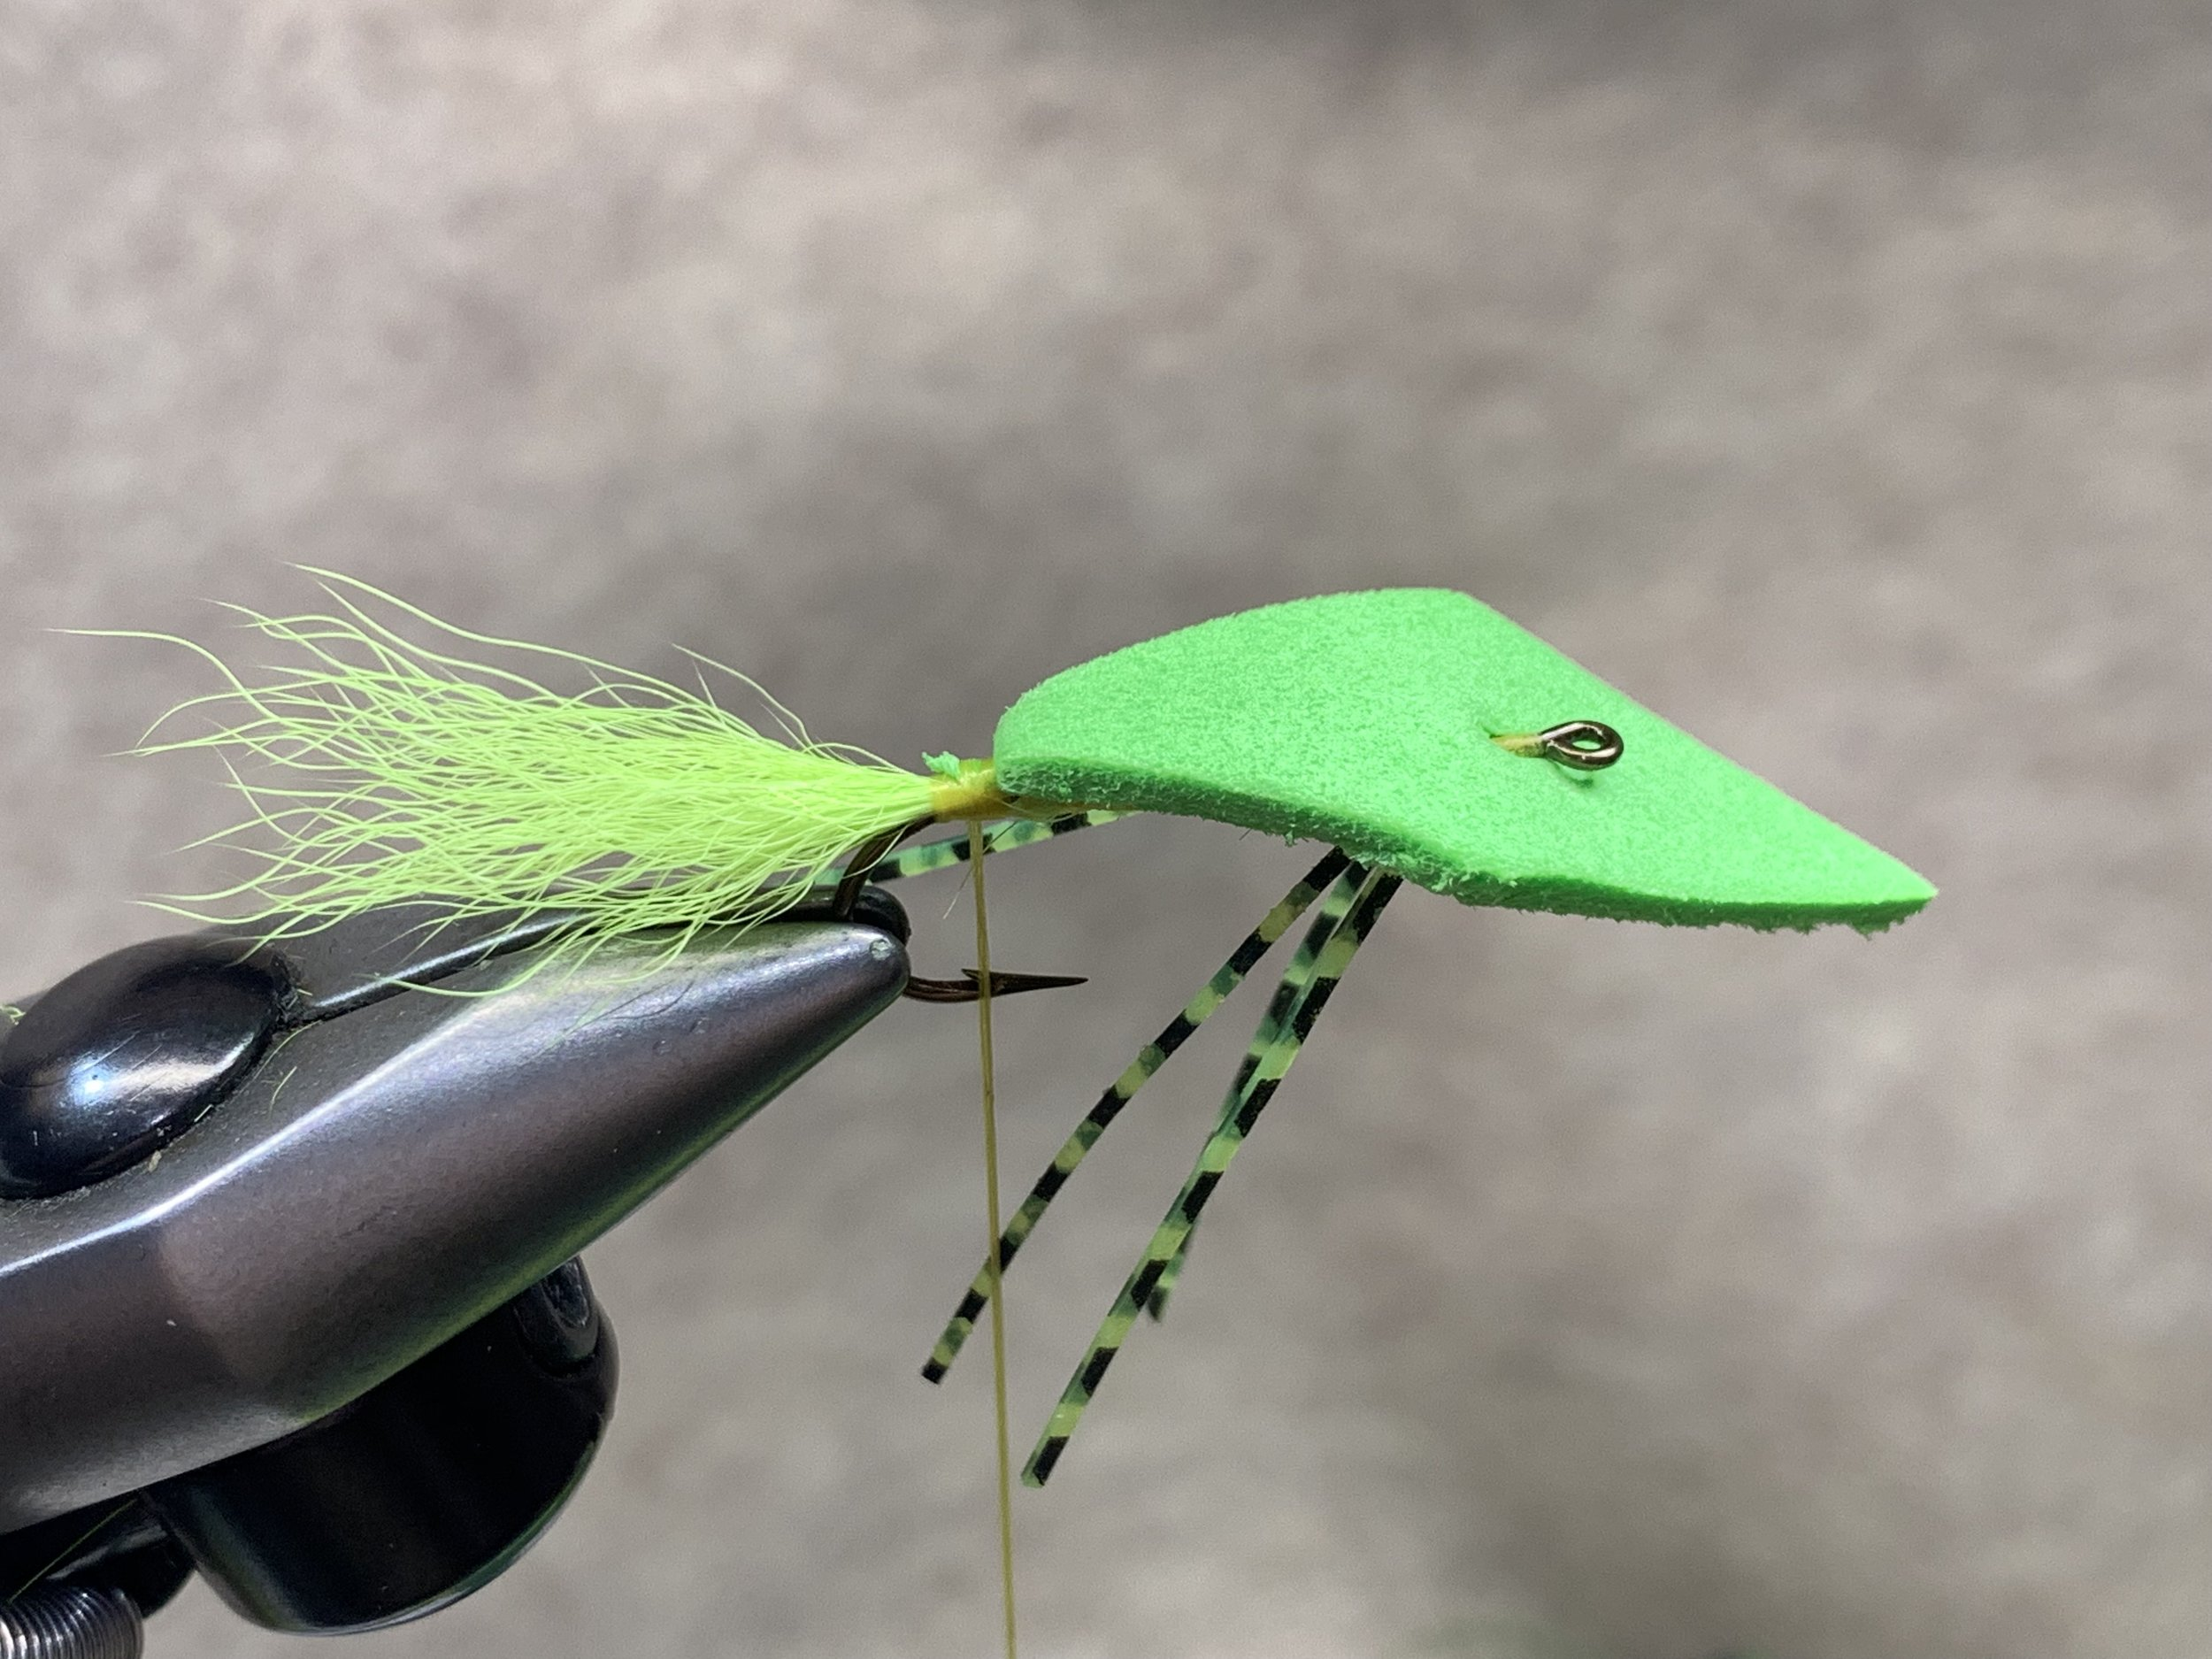 Step 10 - I tie on a rotary fly tying vise (a Regal Revolution) so I secure the top edge of the foam first because I can rotate the vise to get access to the bottom of the fly. If tying on a non-rotary vise you may want to secure the bottom edge first to make finishing the fly easier.